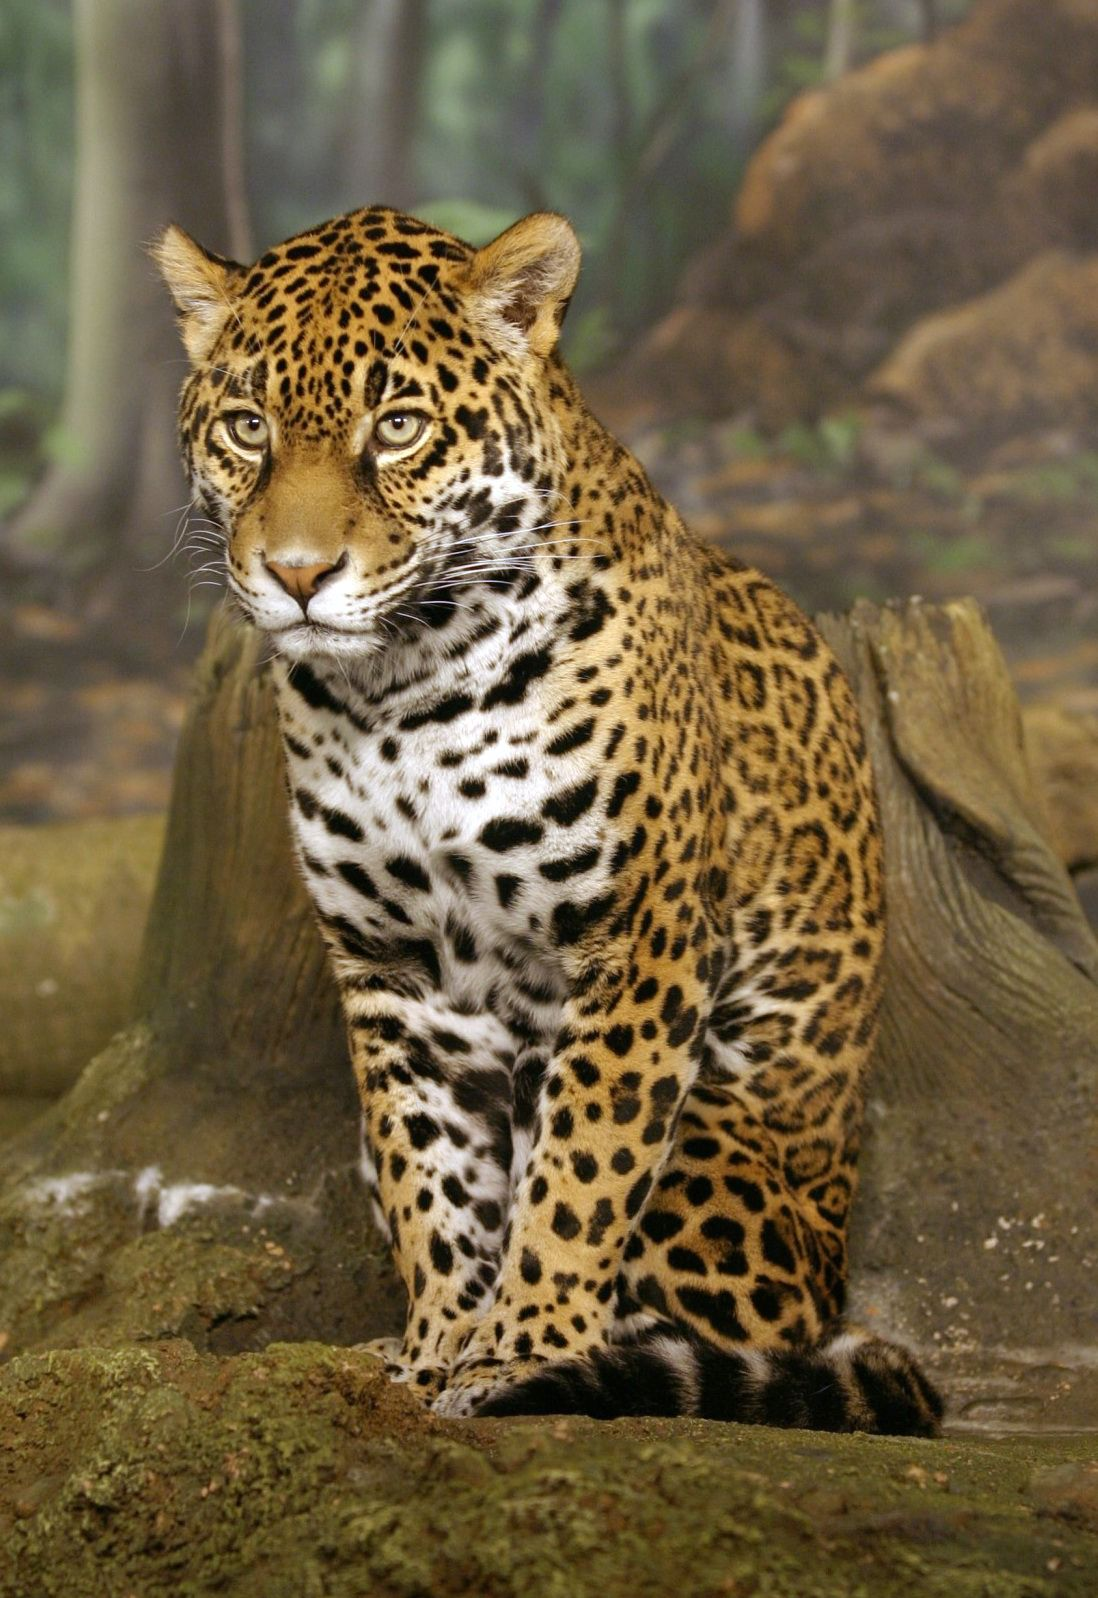 What kind of animals live in the Amazon Rainforest